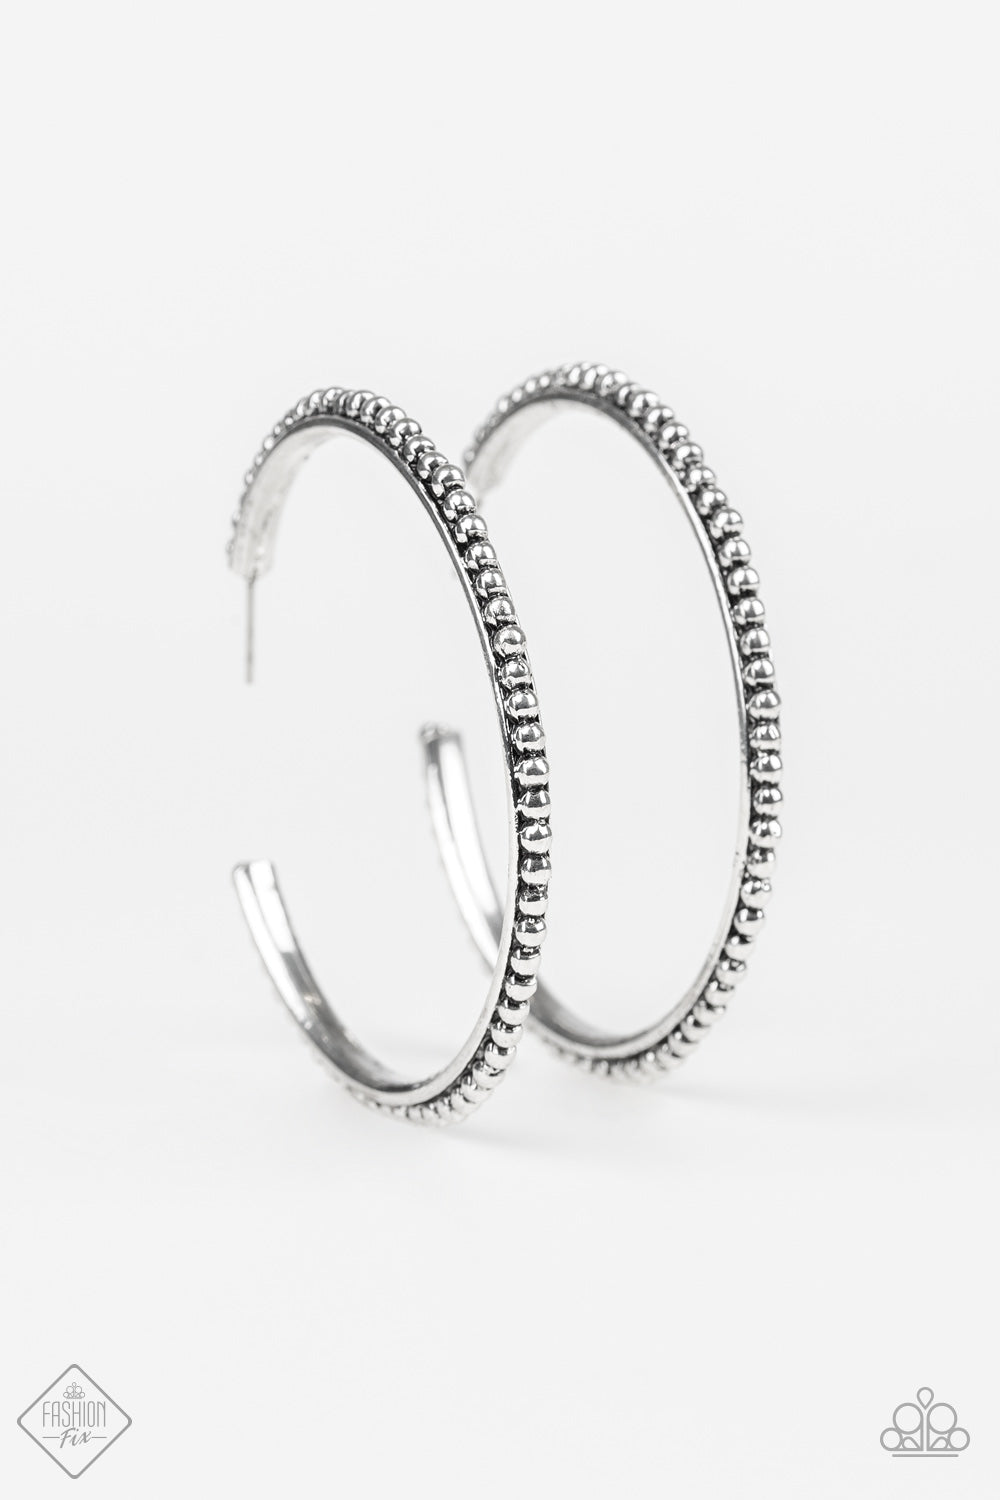 Totally On Trend - Silver Hoop Earrings - The Paparazzi Fox